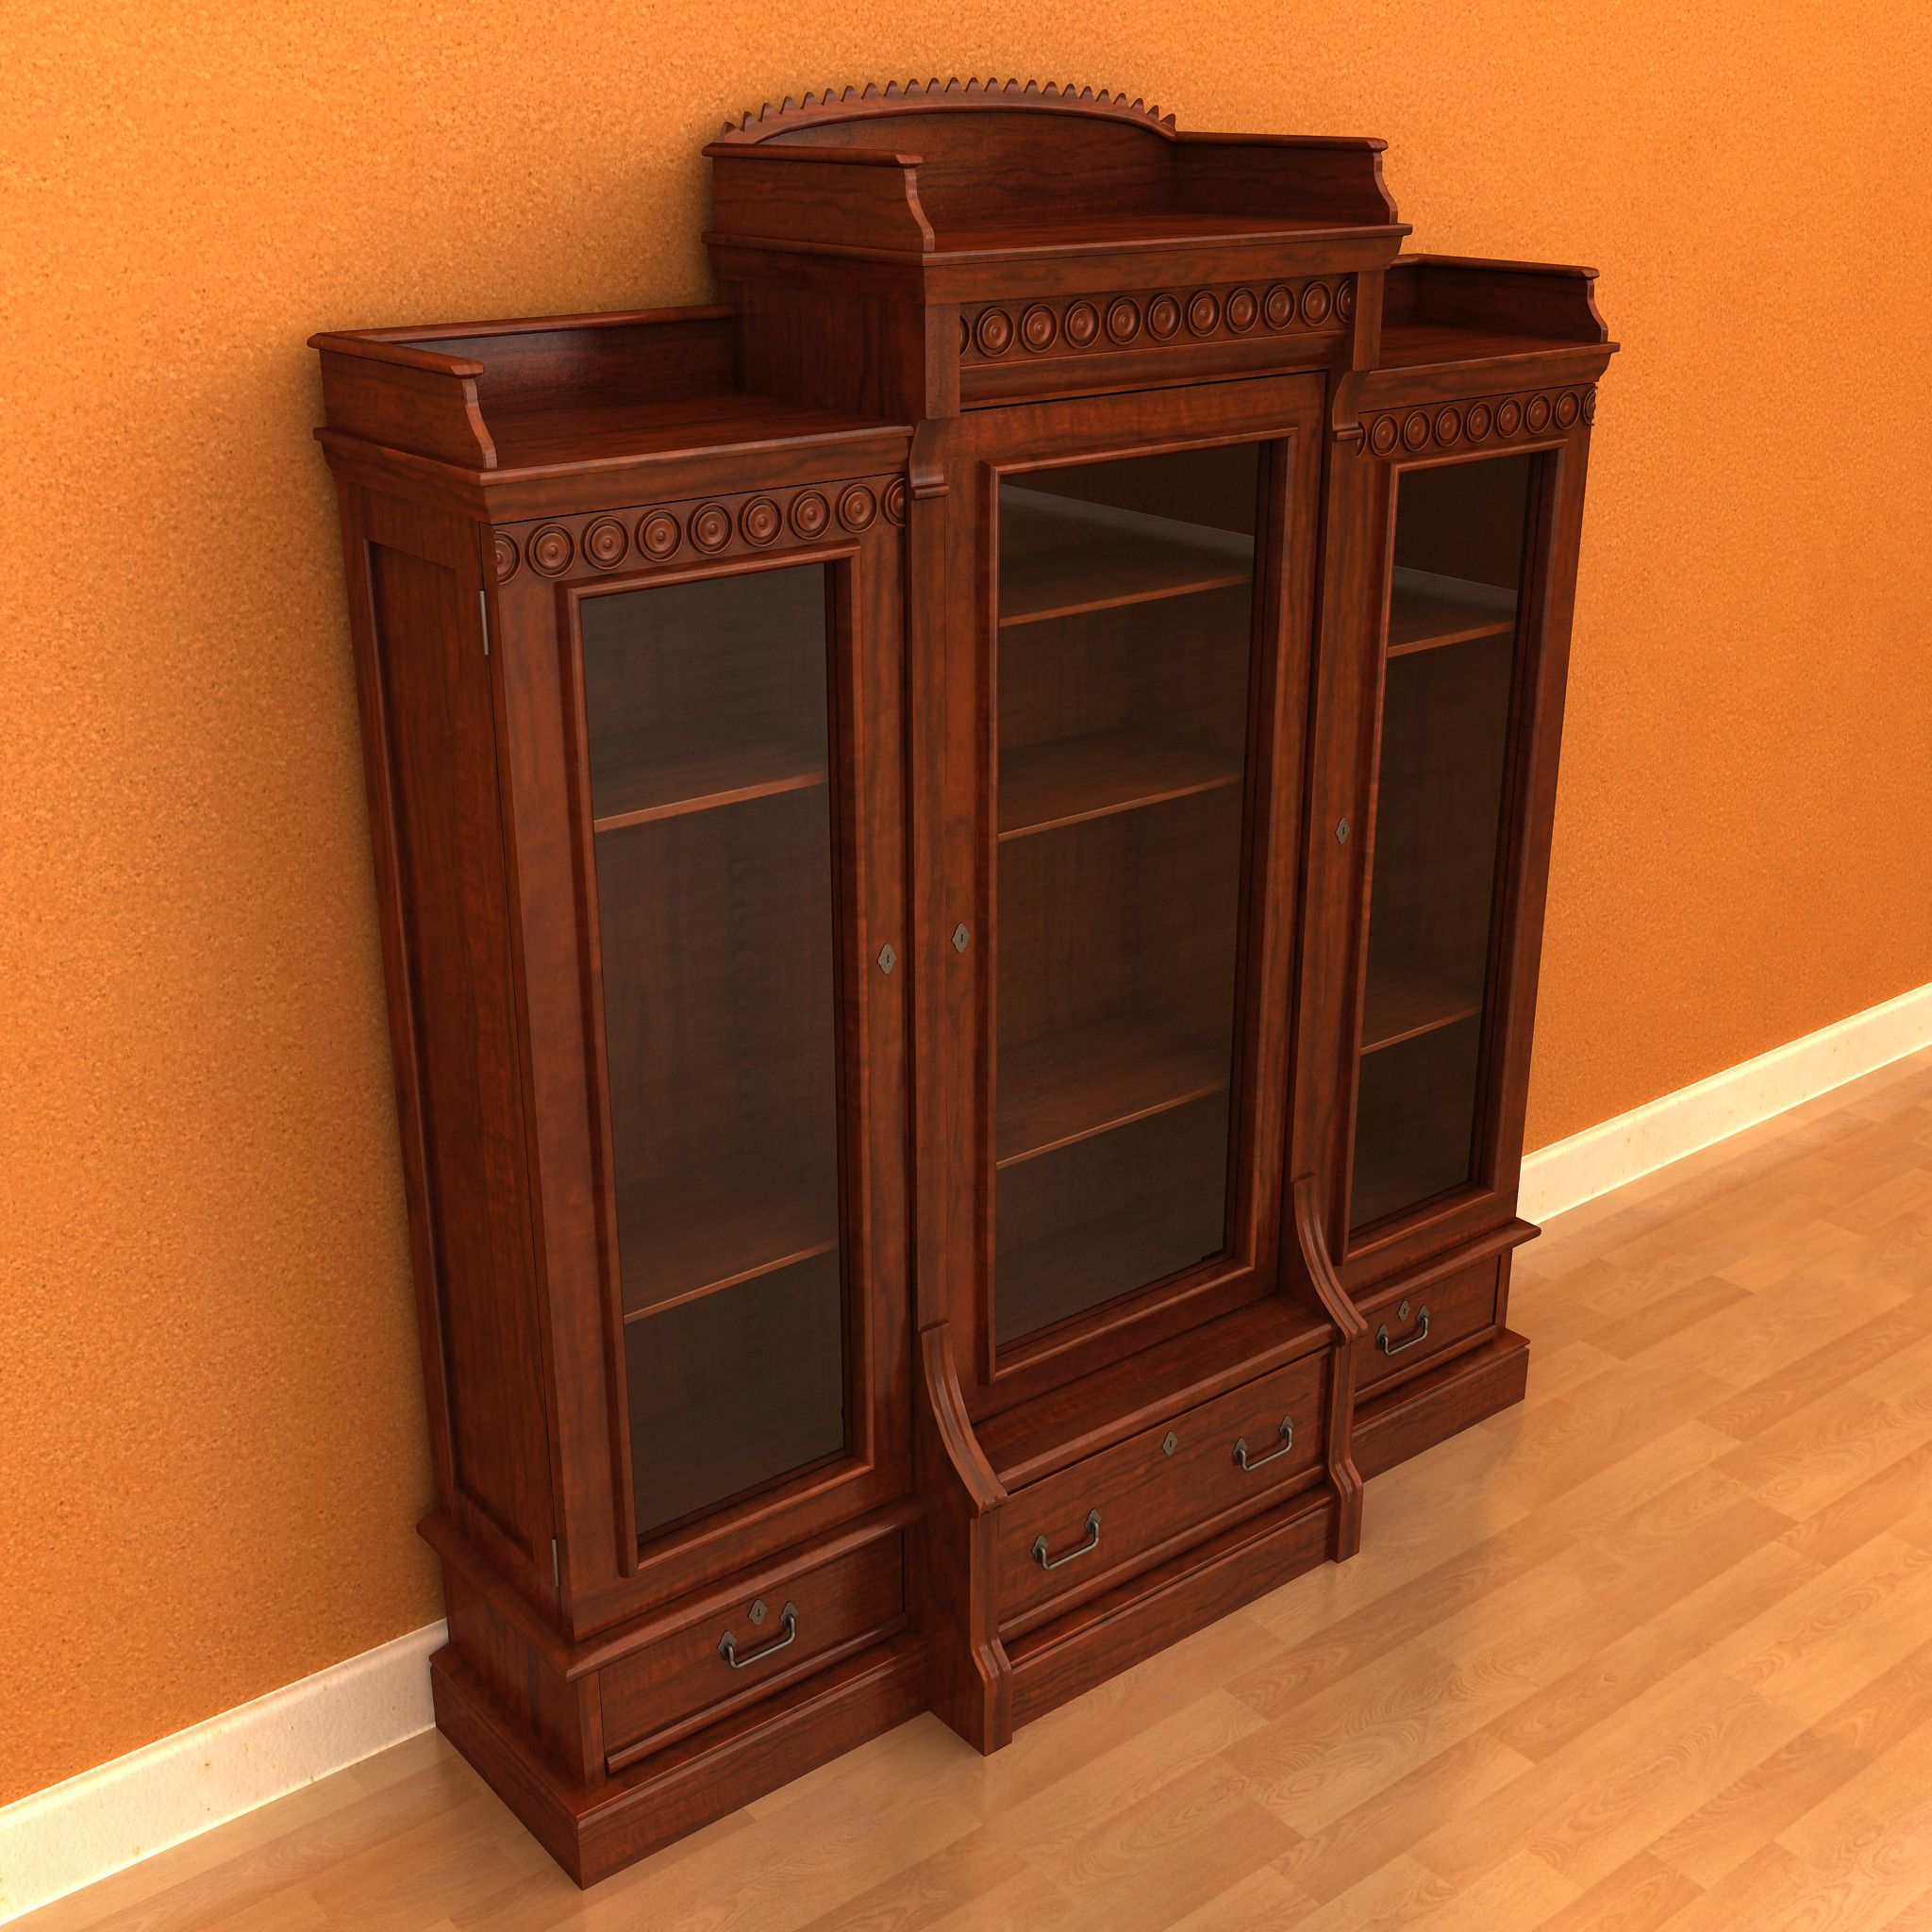 luxury bookcases doors malsj with bookcase glass cabinet ikea tar of enclosed phenomenal inspirational sliding door